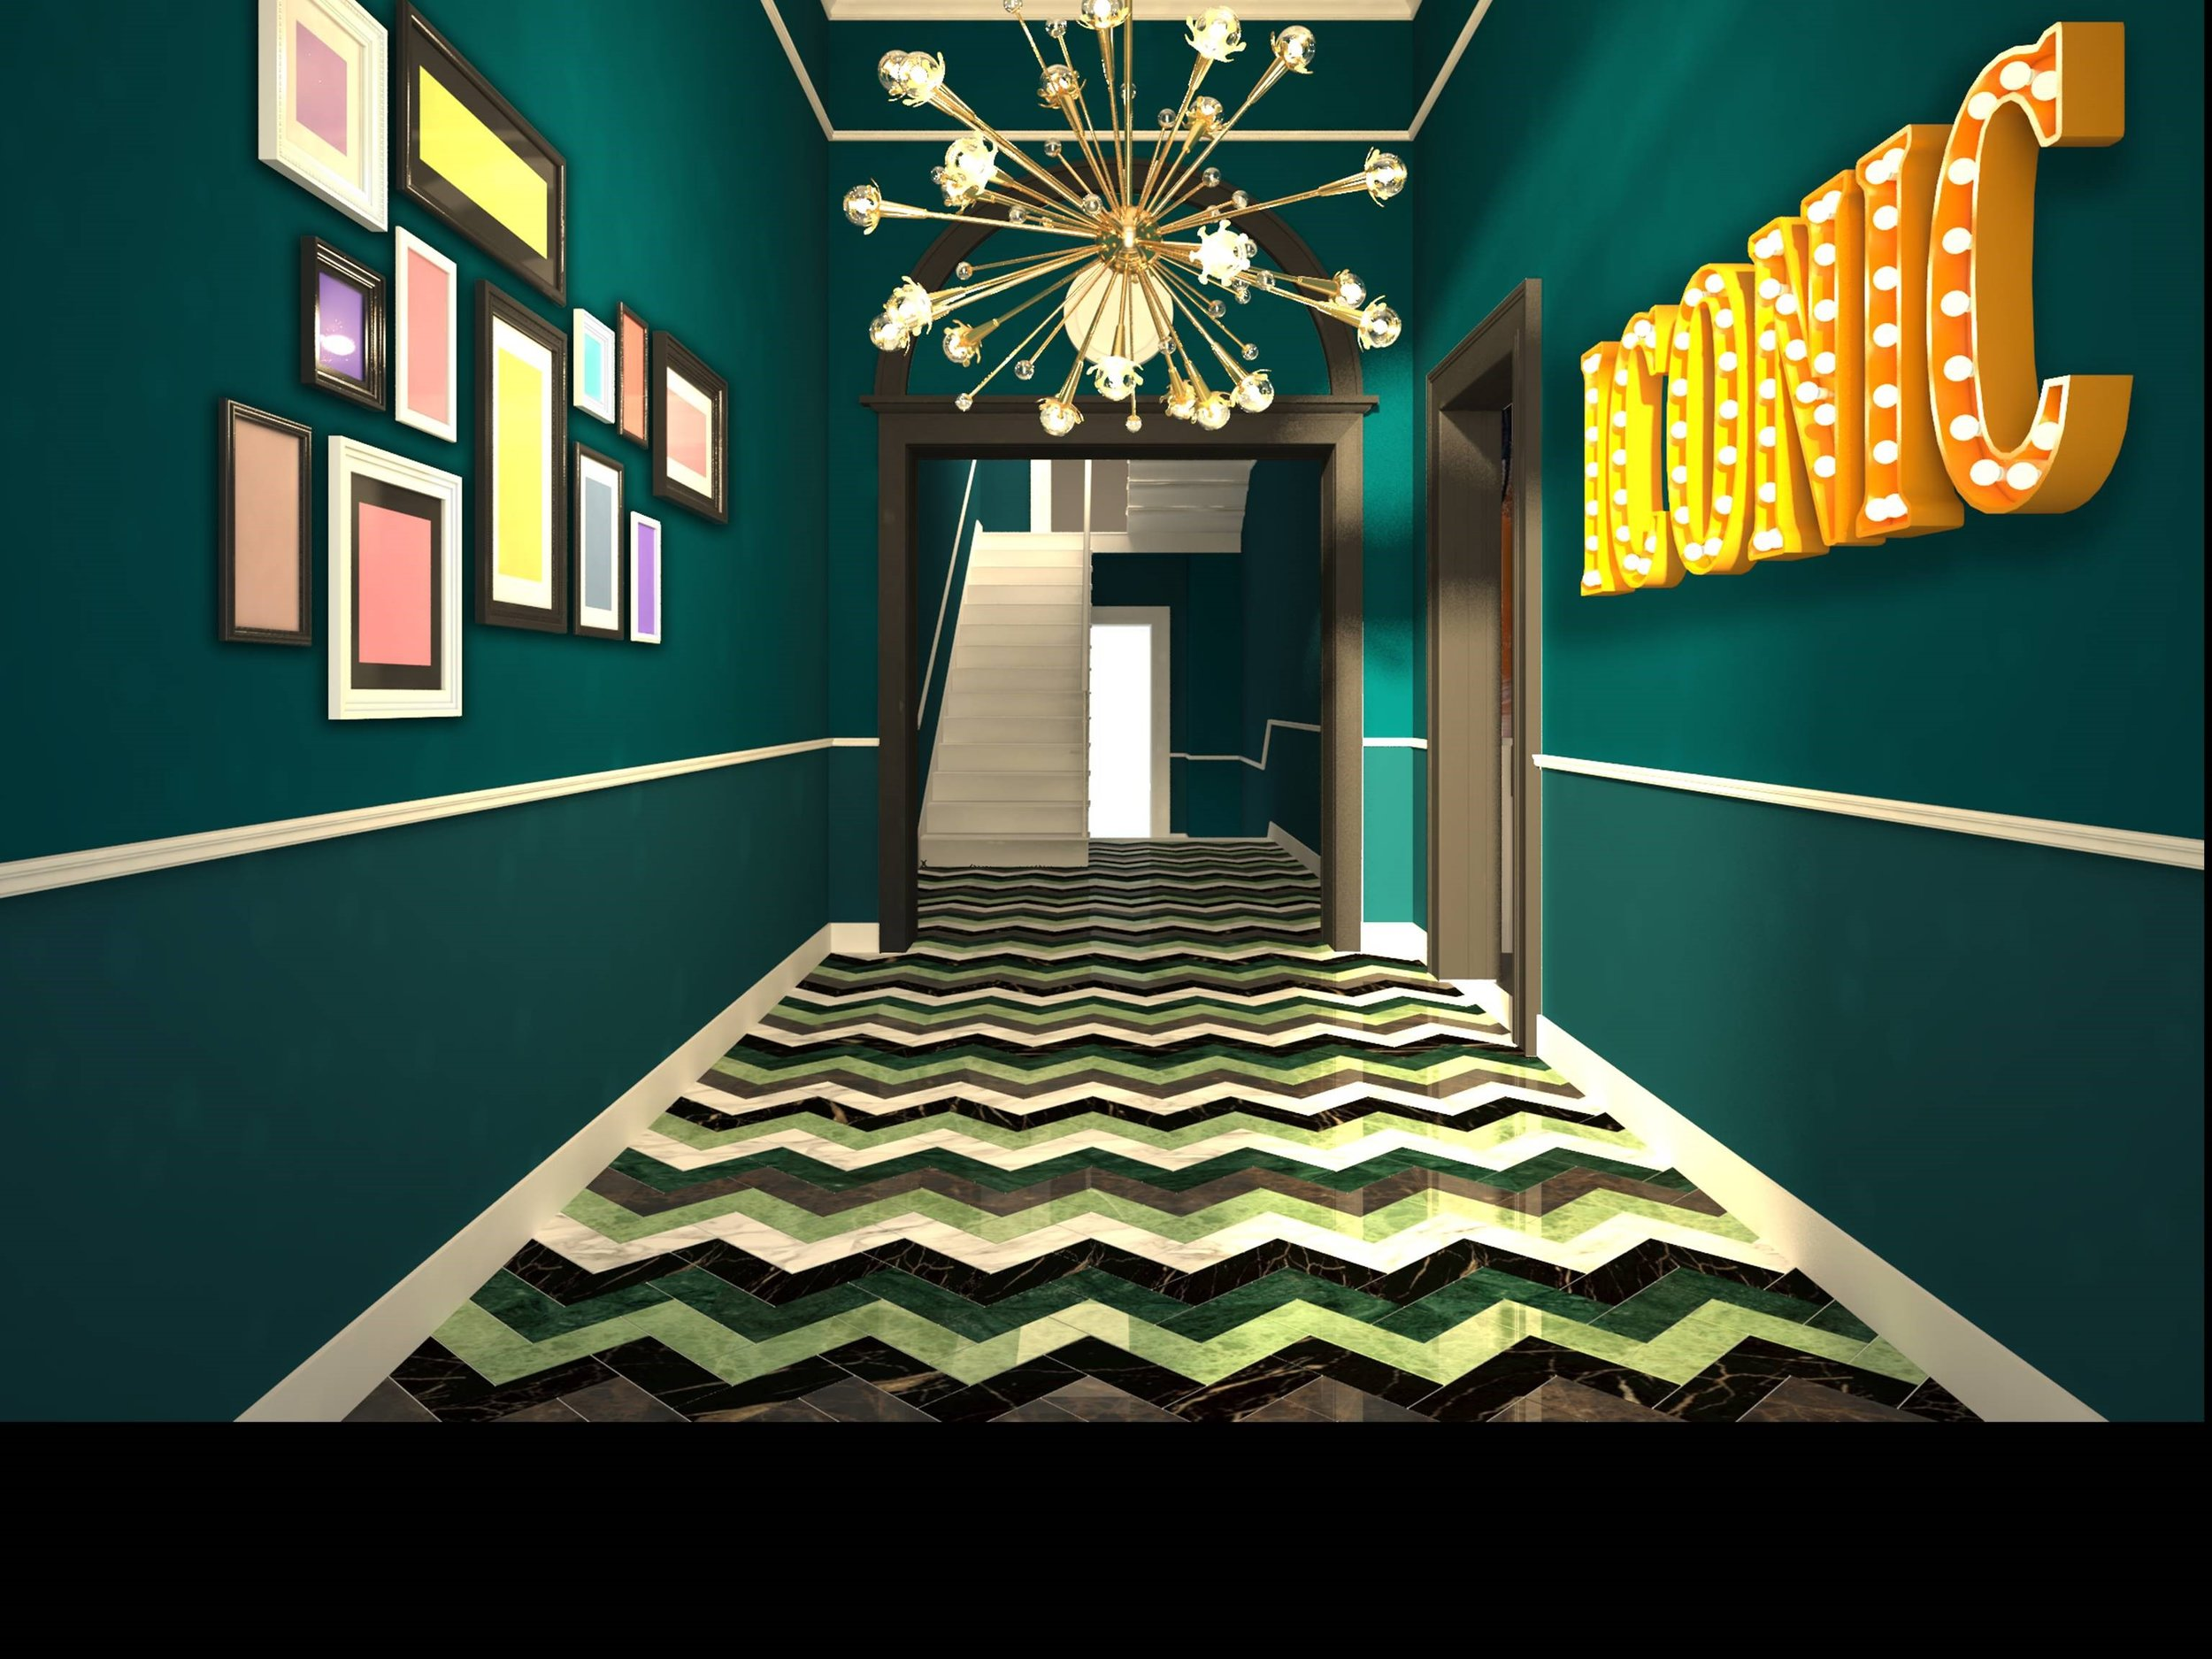 Many believe that maximalist design is a joyous response to many years of minimalism restraint.